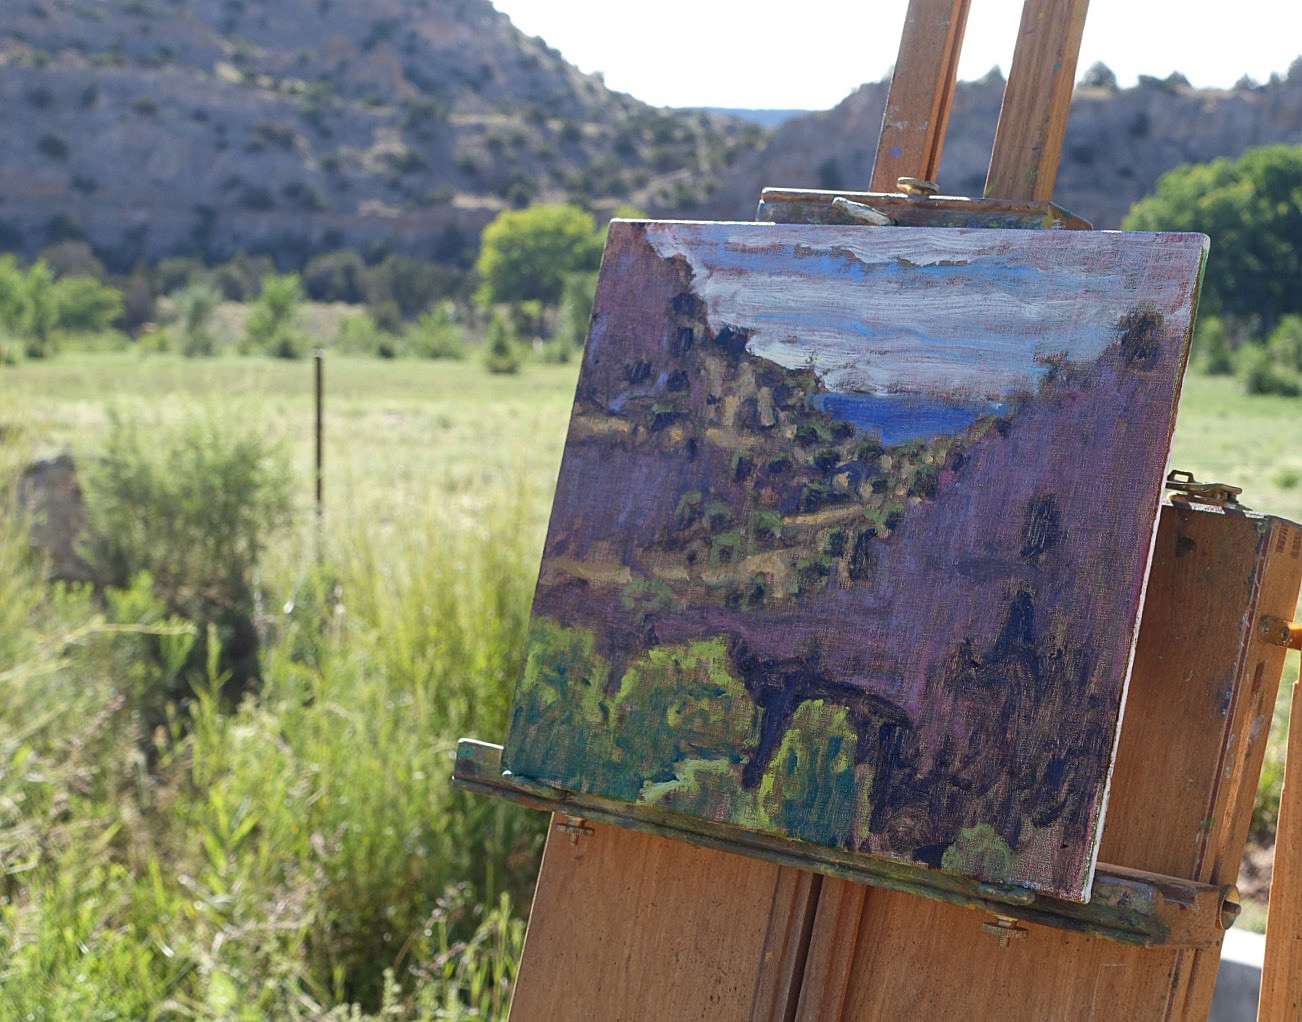 plein air work in progress at Ghost Ranch in Abiquiu, NM